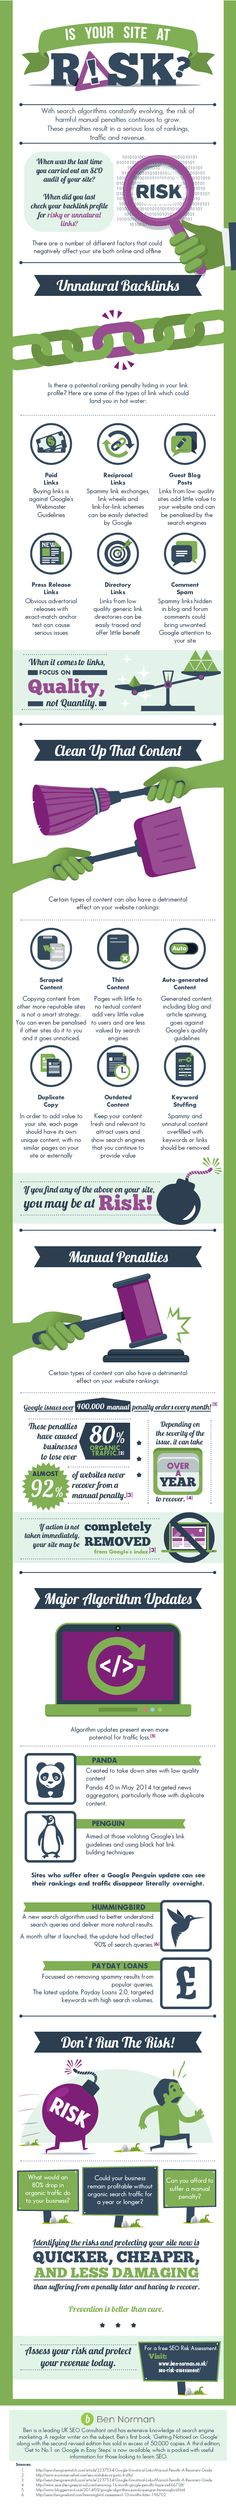 Is Your Site At Risk? SEO Risk Assessment Infographic